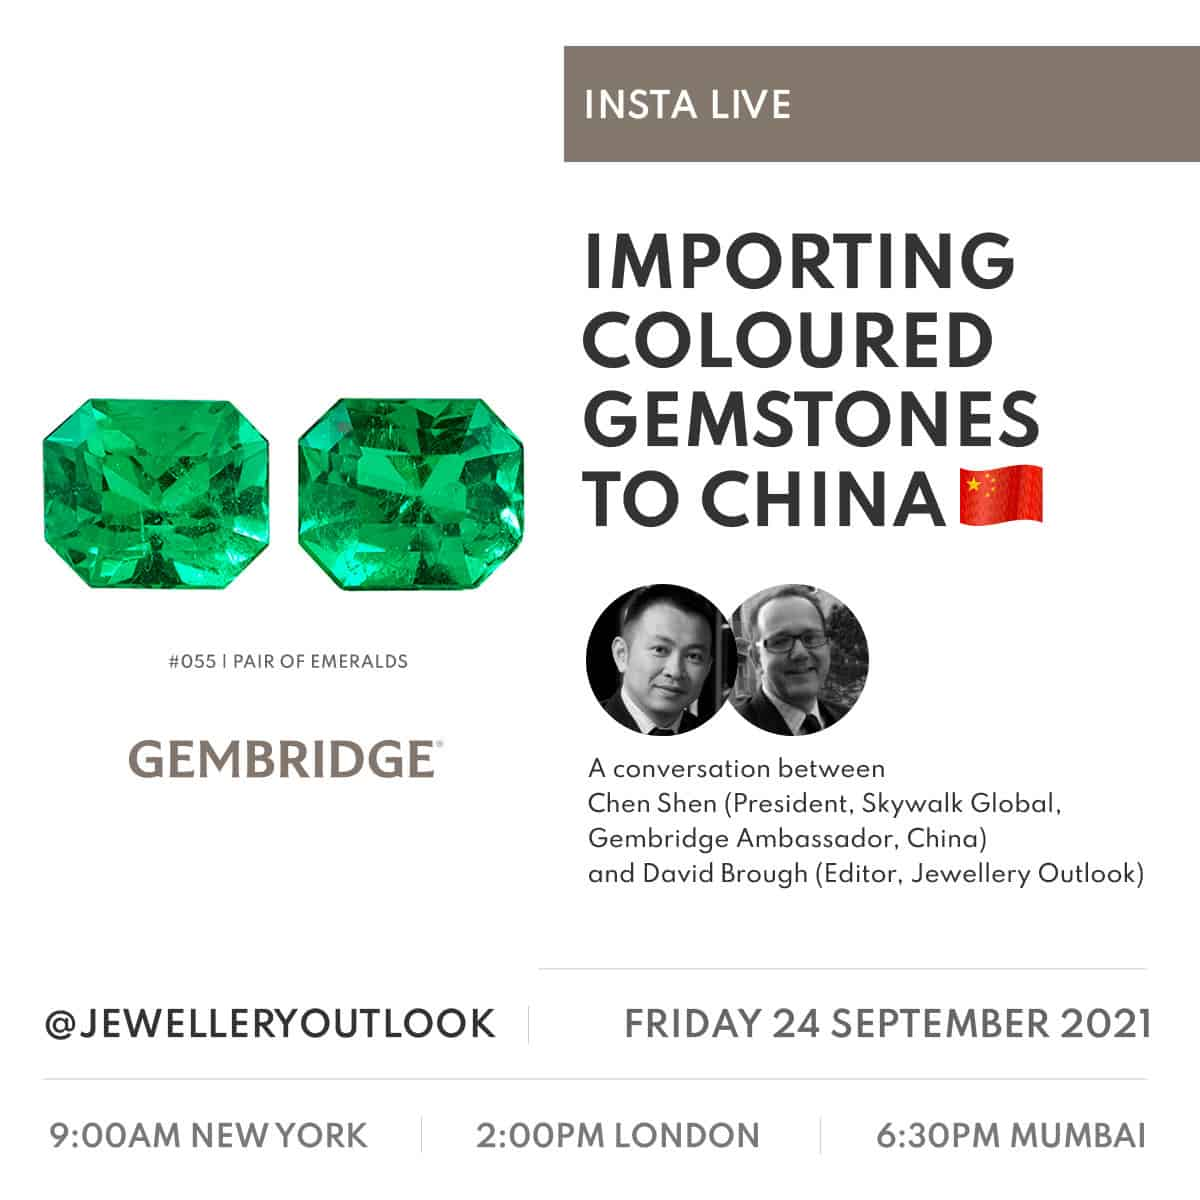 """Insta Live @jewelleryoutlook about """"Importing Coloured Gemstones to China"""""""